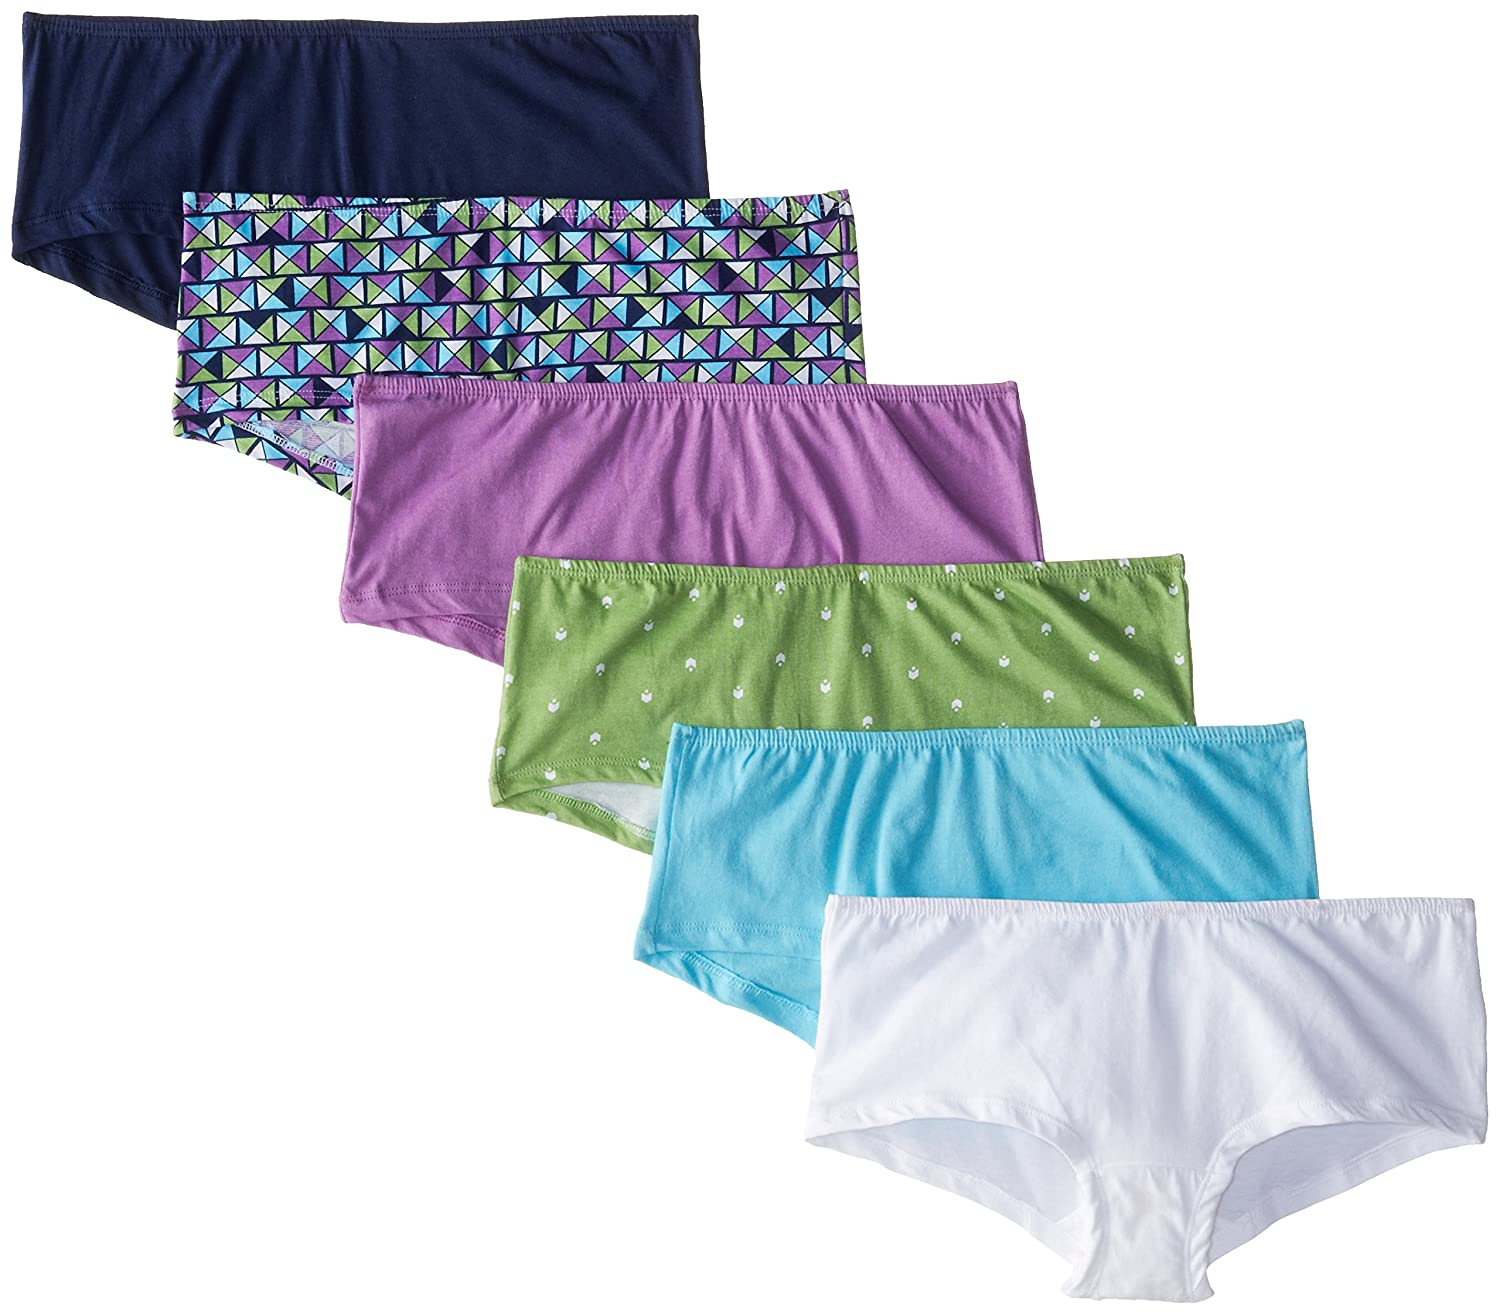 Fruit of the Loom Women's Ladies 6 Pack Comfort Covered Waistband boyshort Panty 6DBS0HP